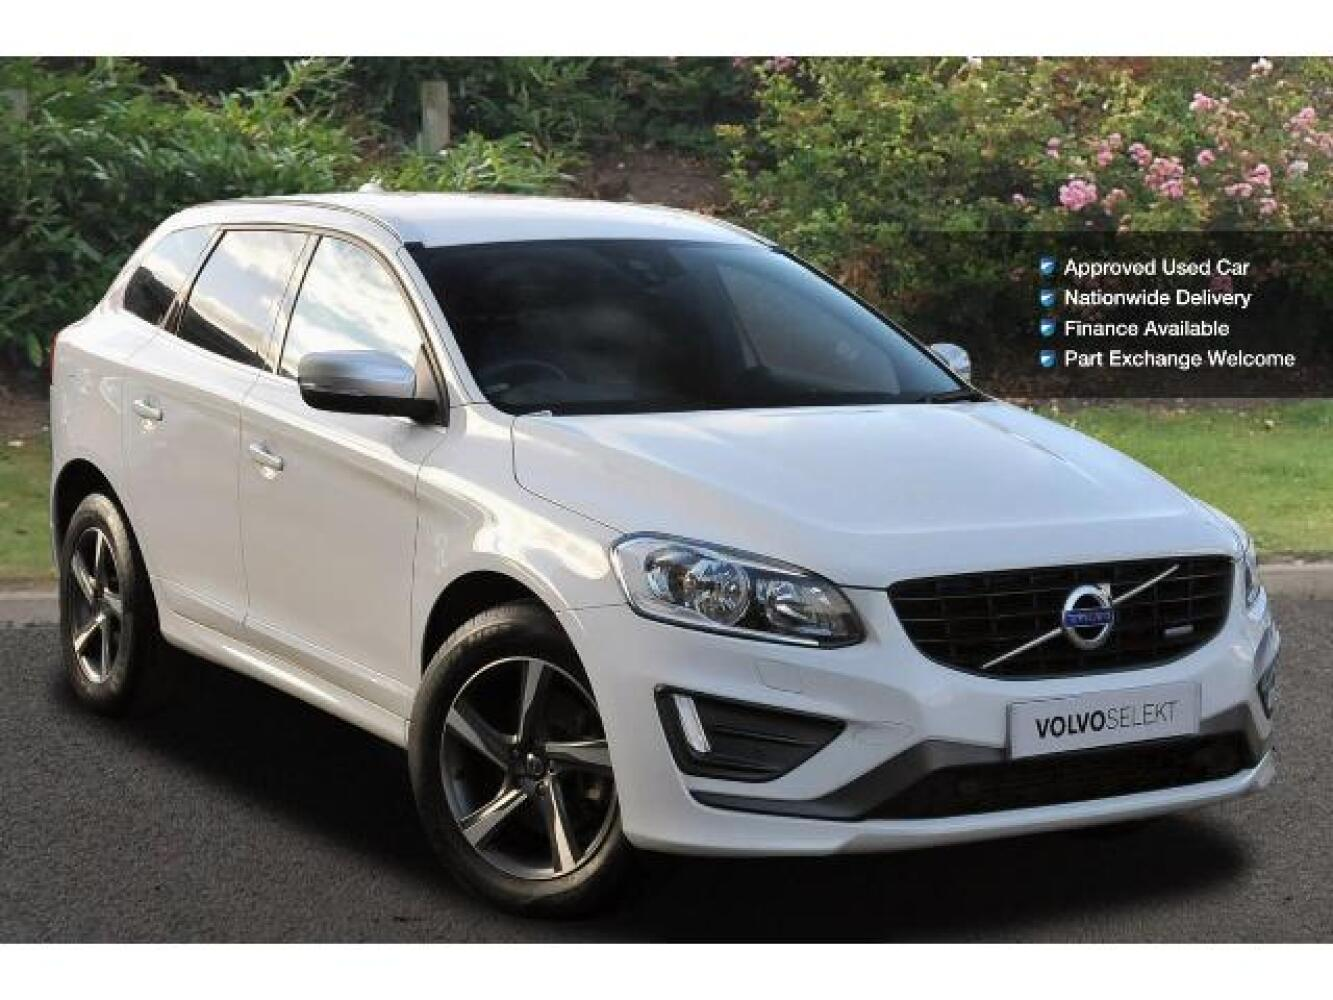 used volvo xc60 d5 215 r design nav 5dr awd geartronic diesel estate wav bristol street versa. Black Bedroom Furniture Sets. Home Design Ideas